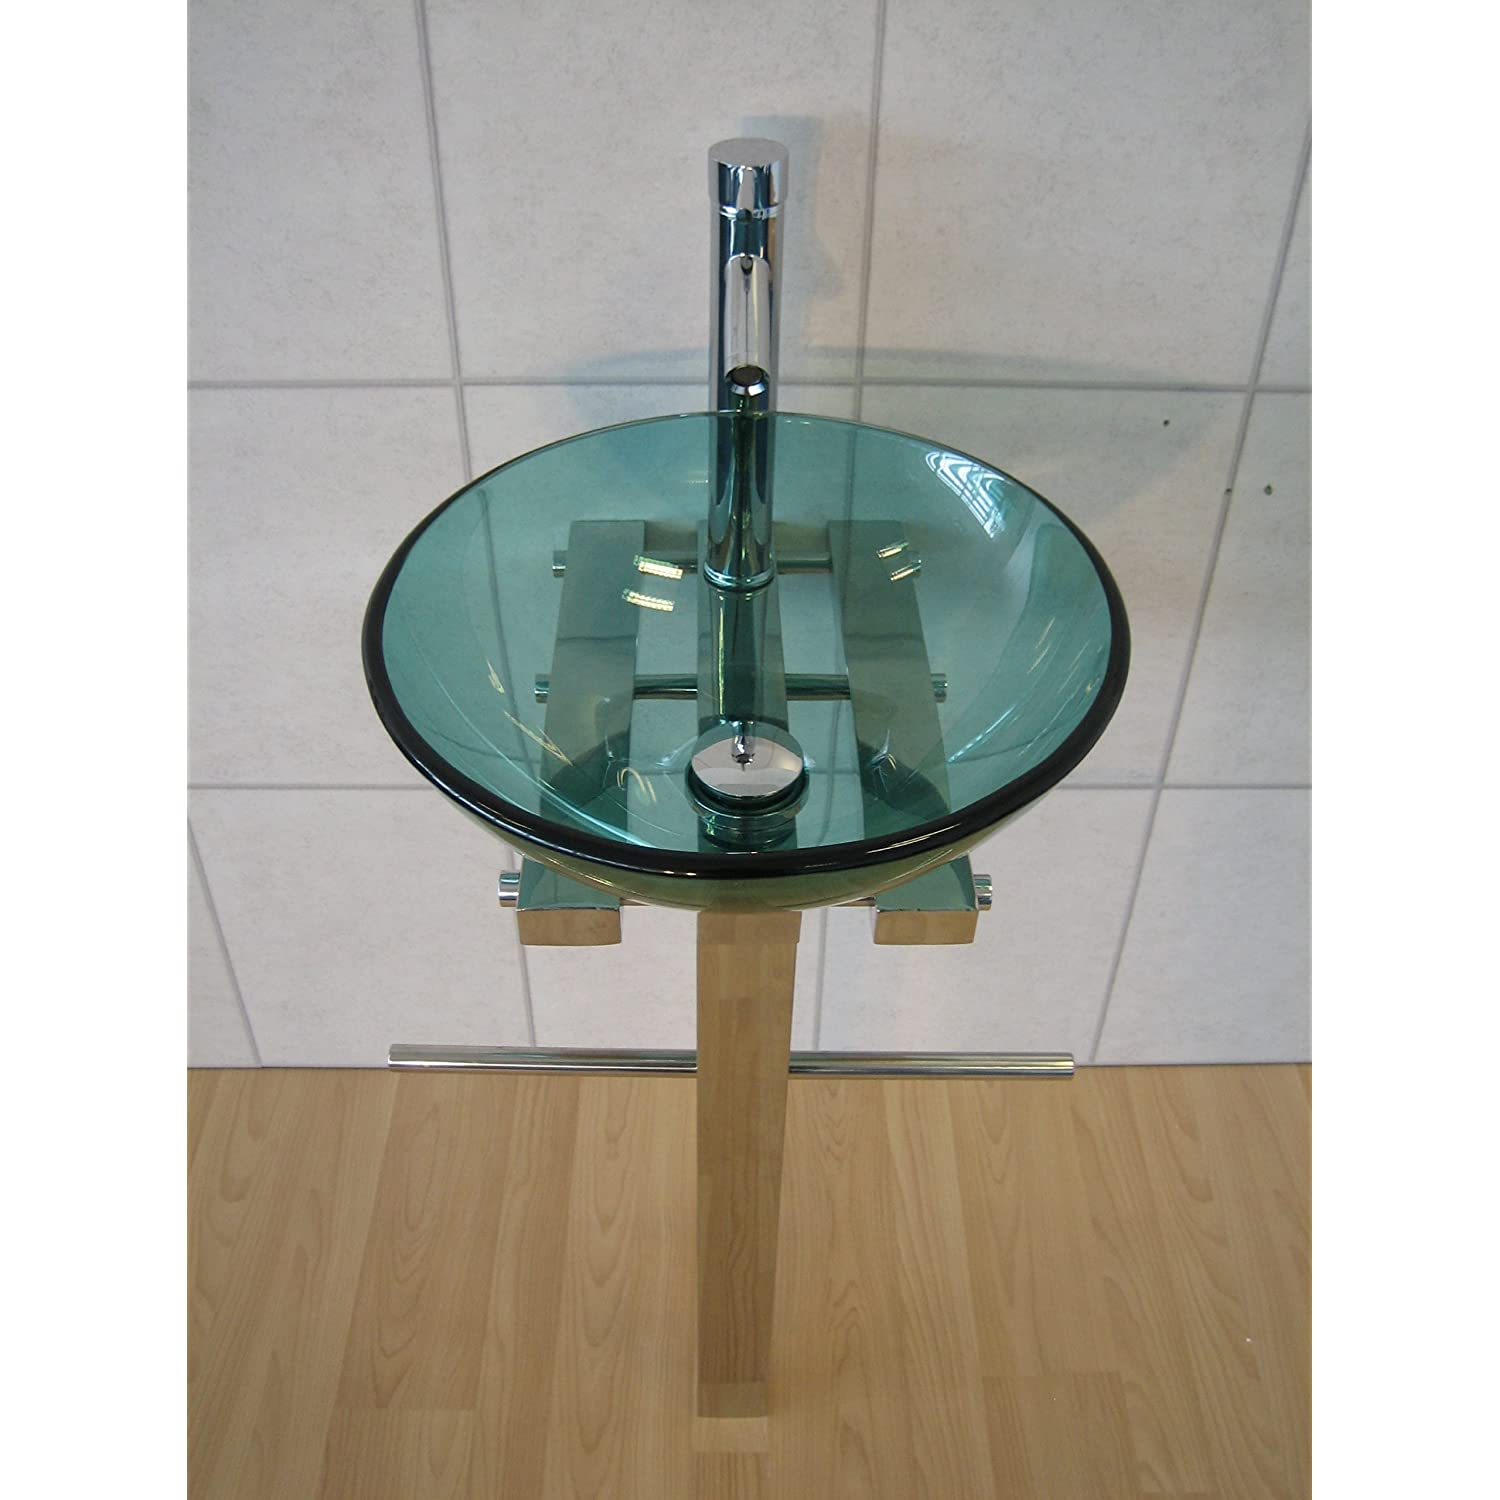 Bathroom Sink Trap : Designer Bathroom Sink Round Green Glass Wash Basin Pedestal Tap Trap ...